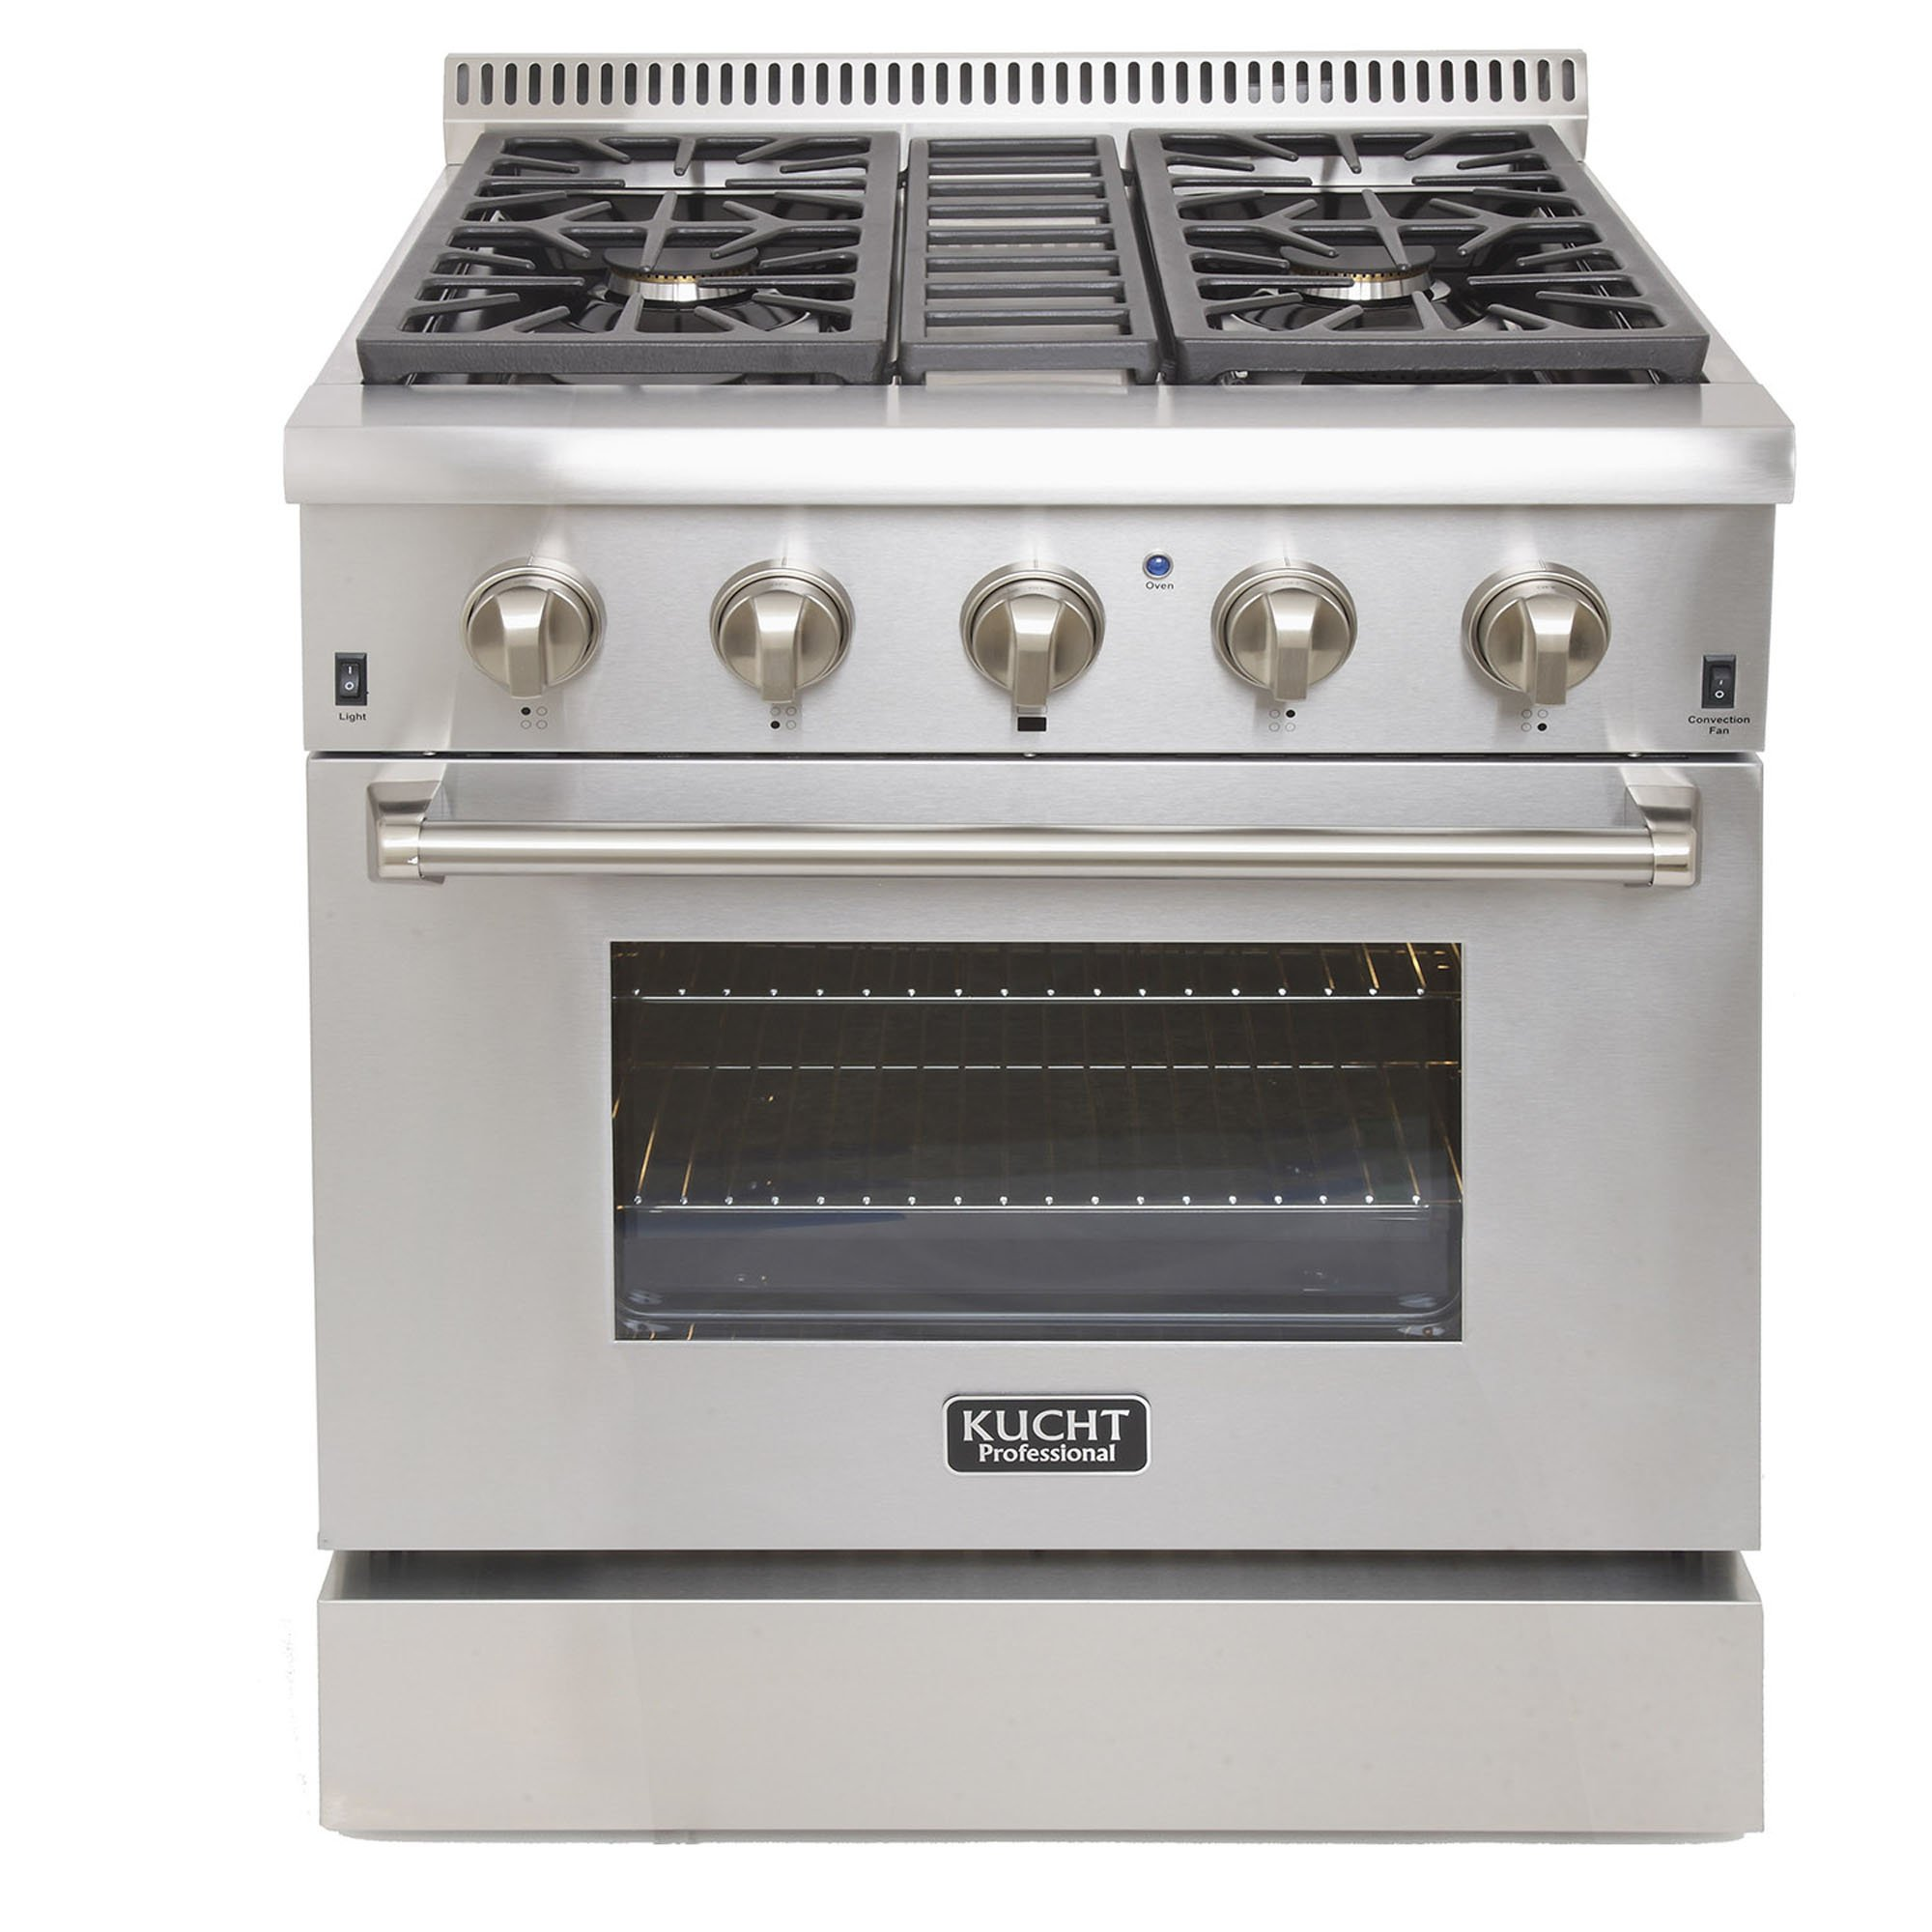 Kucht KRD306F Professional 30'' 4.2 cu. ft. Dual Fuel Range for Natural Gas, Stainless-Steel